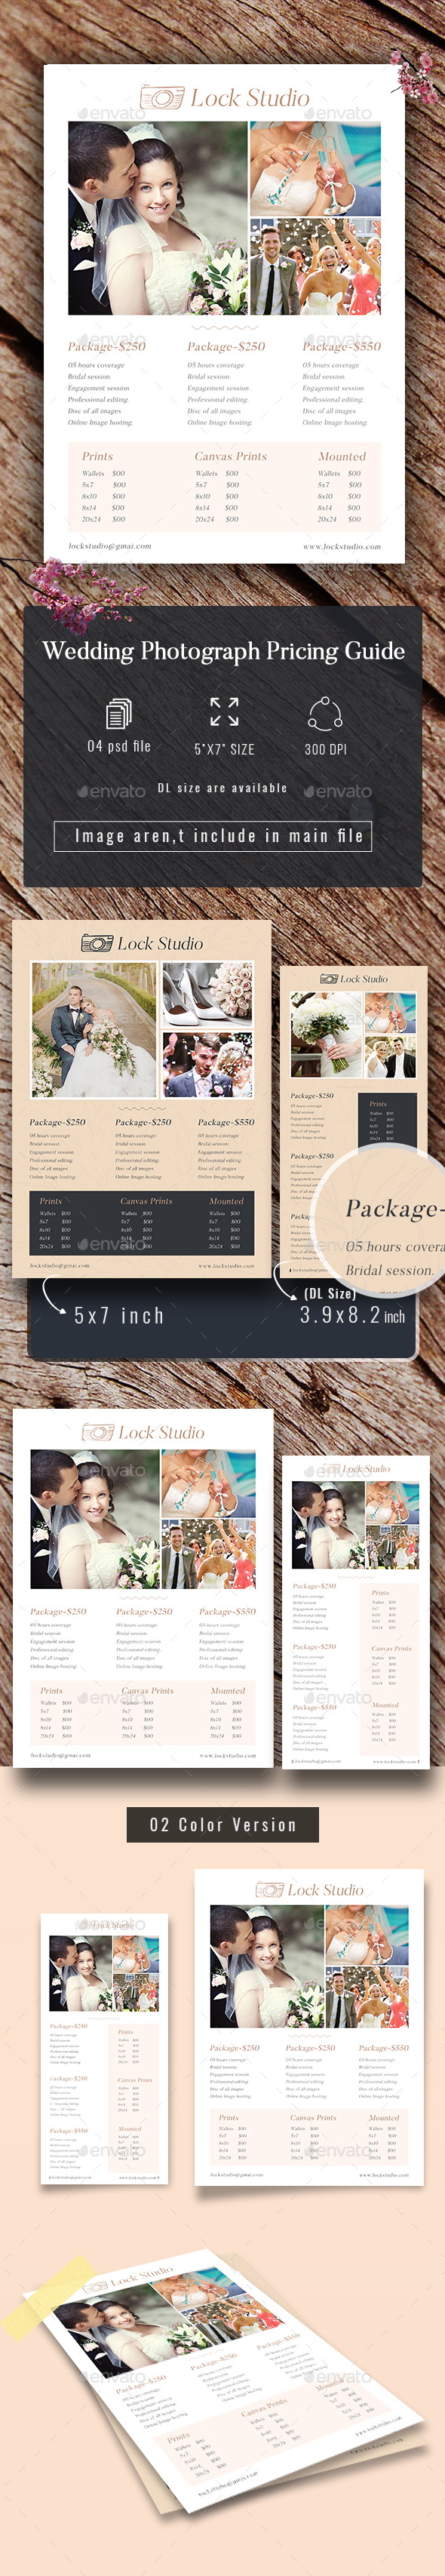 Wedding Photography Price Guide - Commerce Flyers